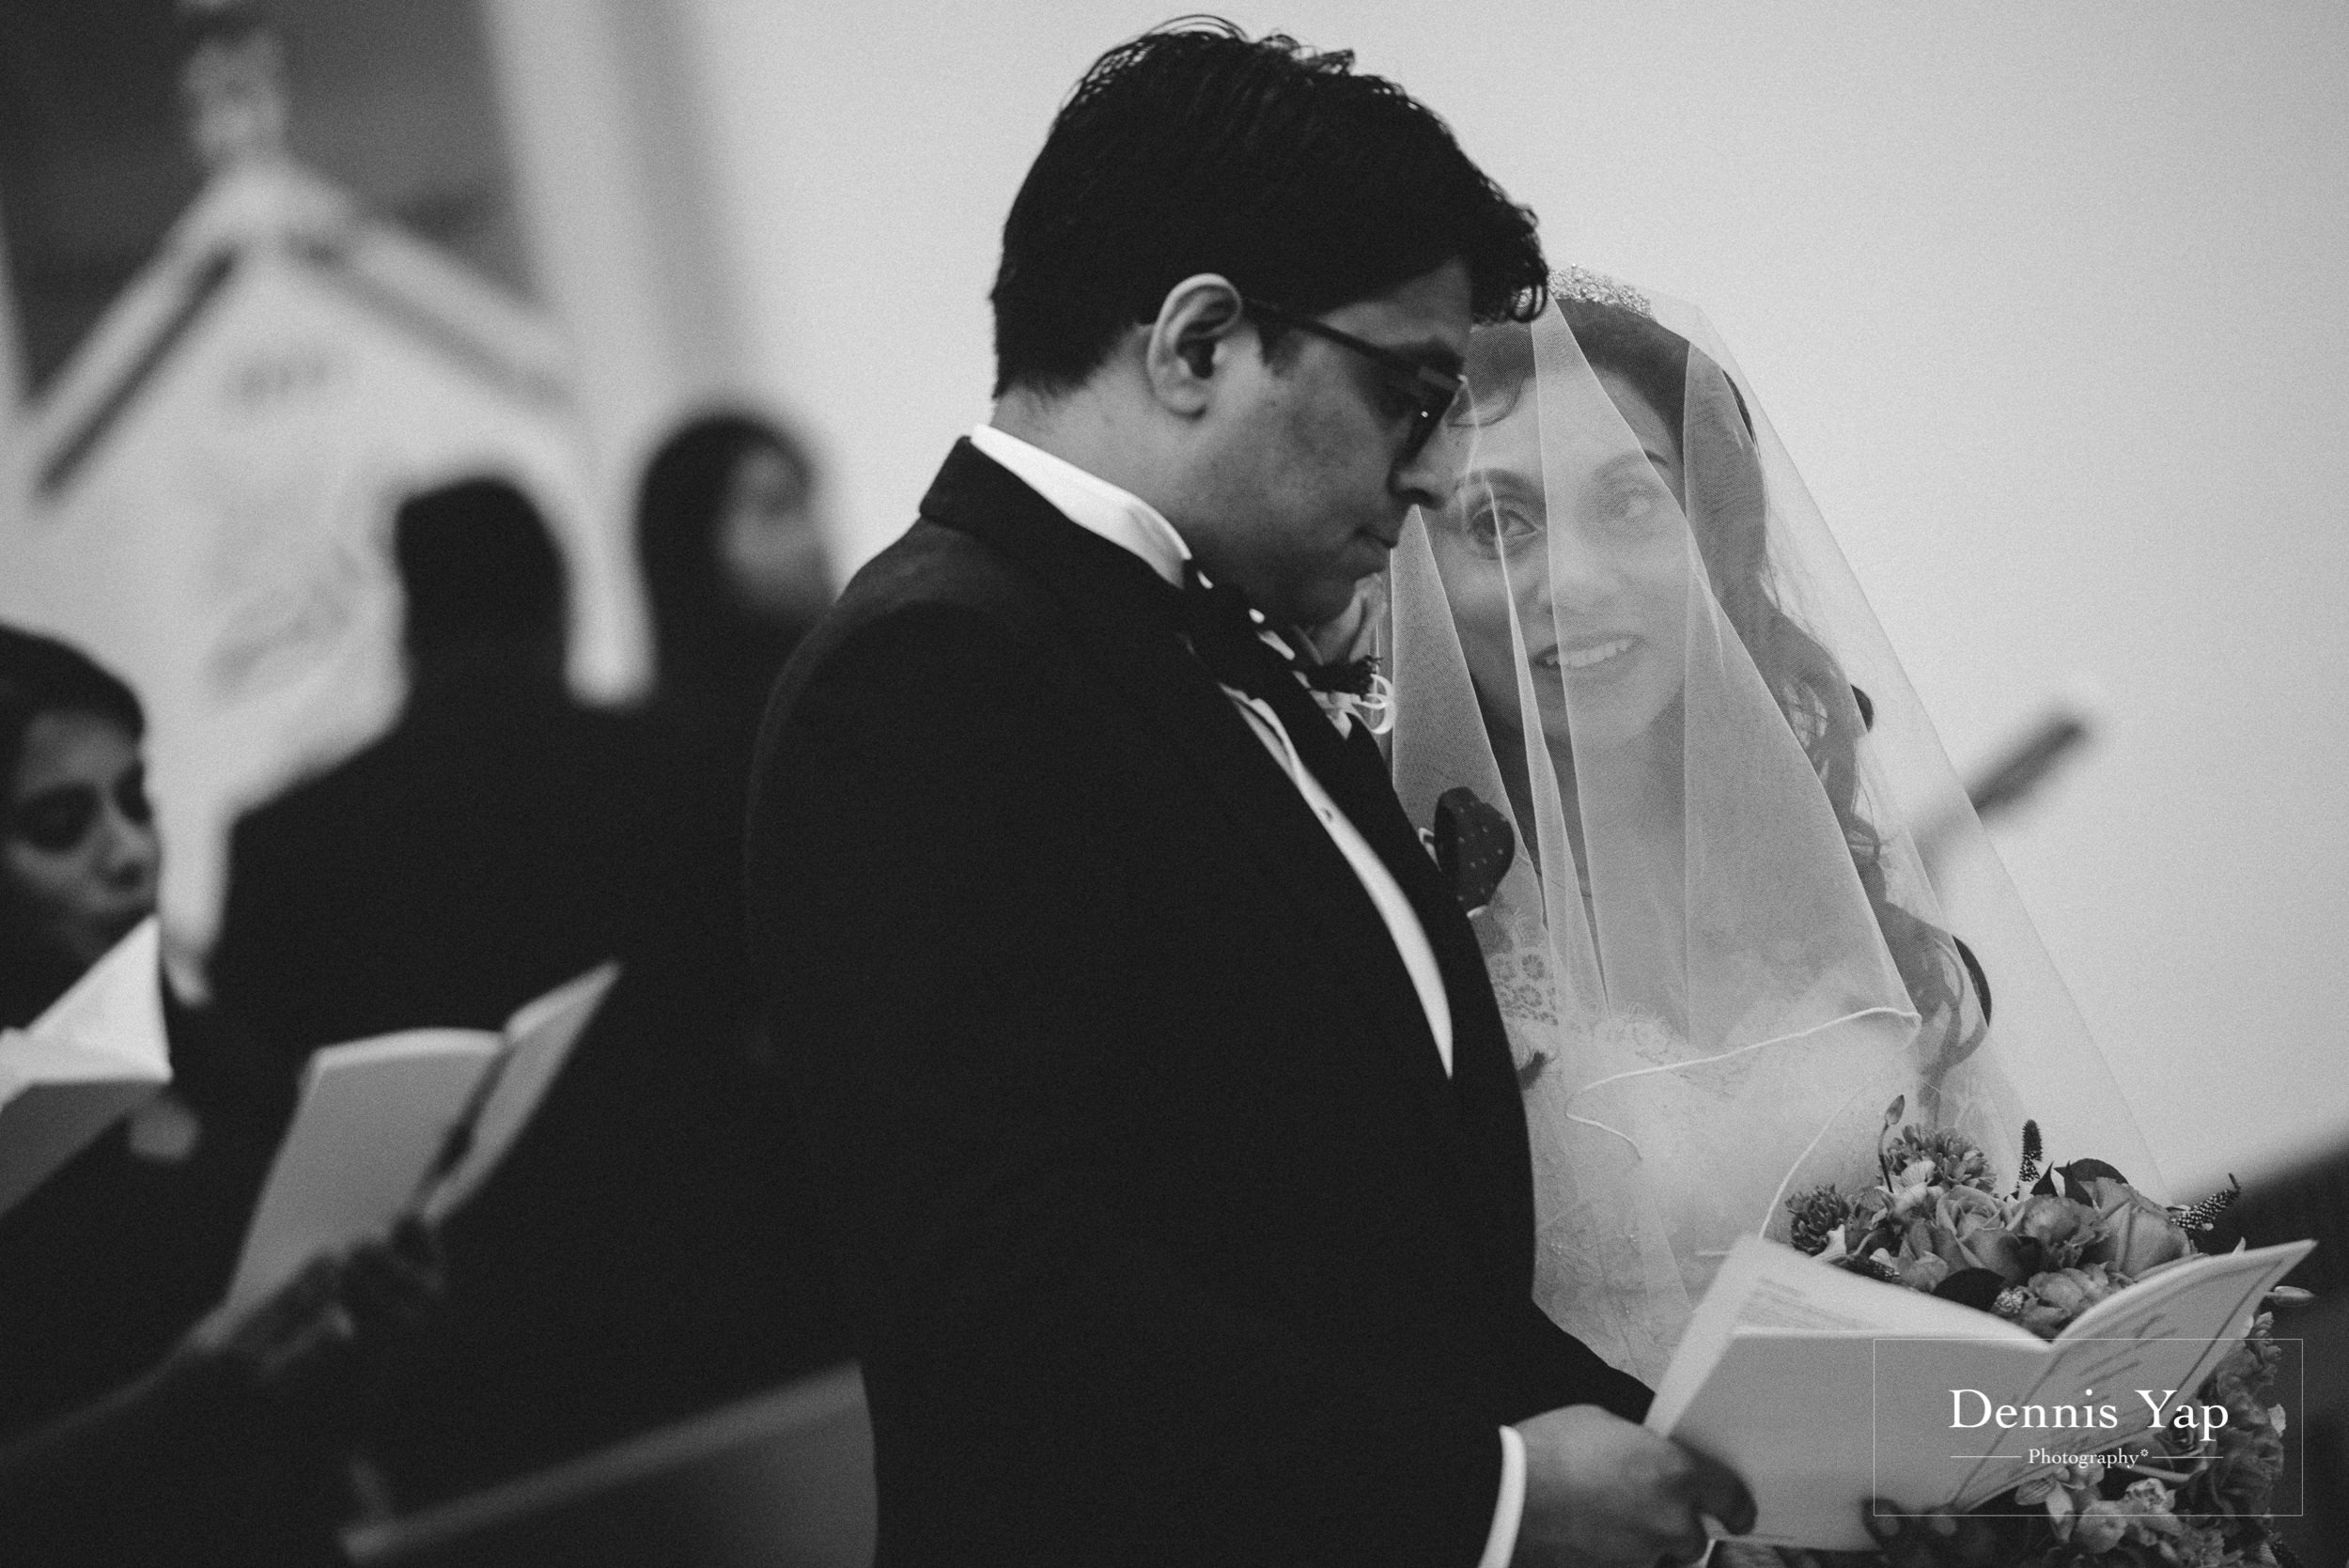 arun angela church wedding st peter bangsar dennis yap photography-15.jpg